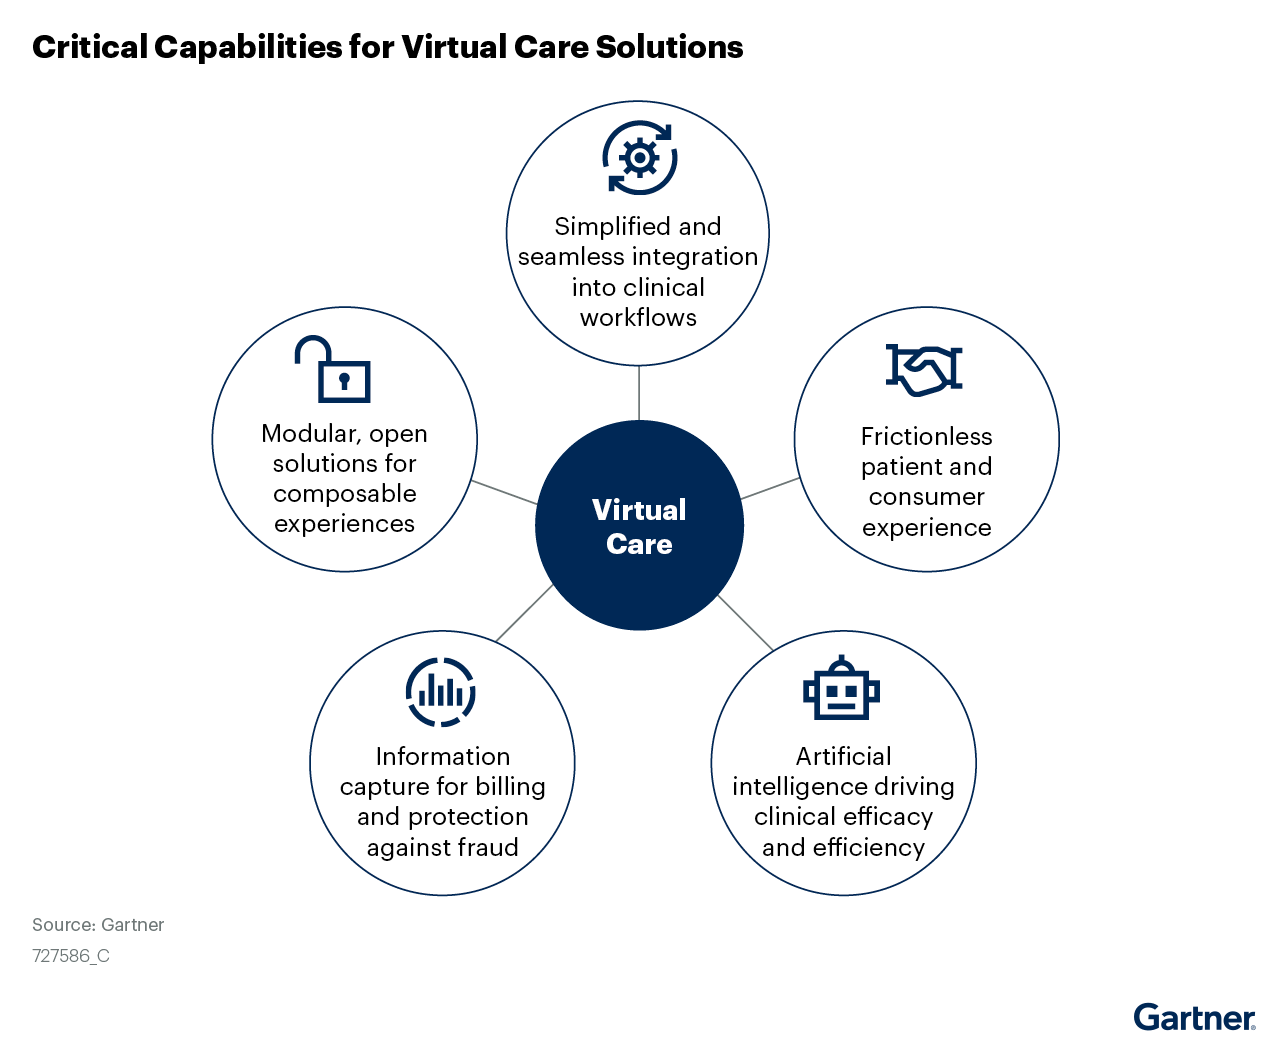 Critical capabilities for virtual care solutions